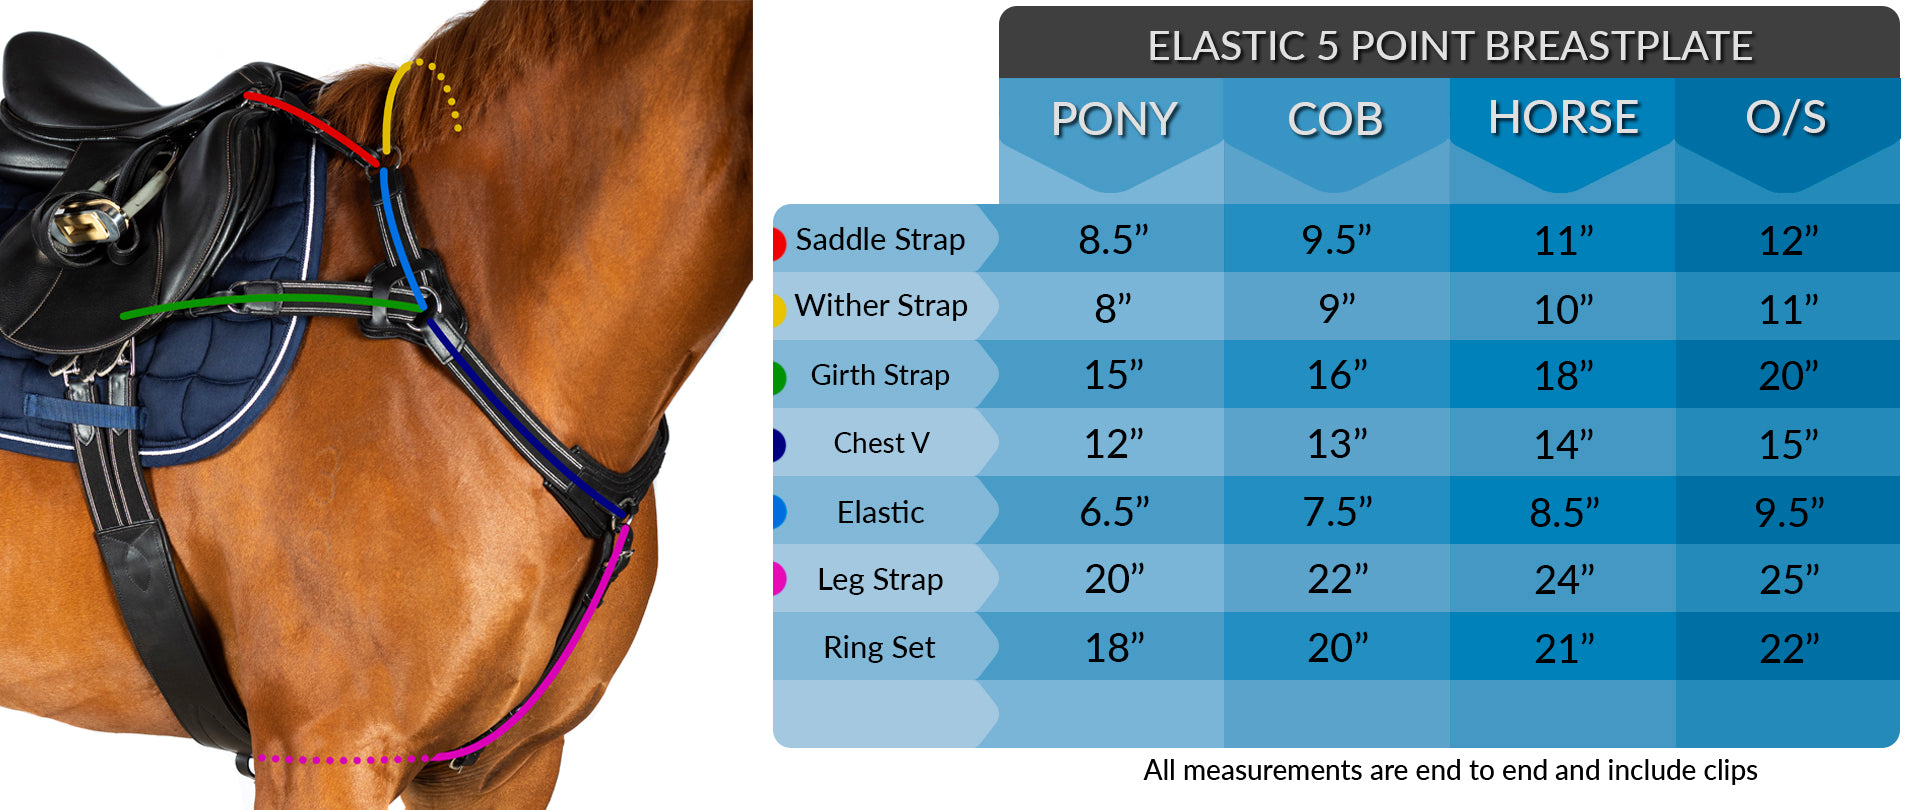 5 POINT BREASTPLATE MEASUREMENT